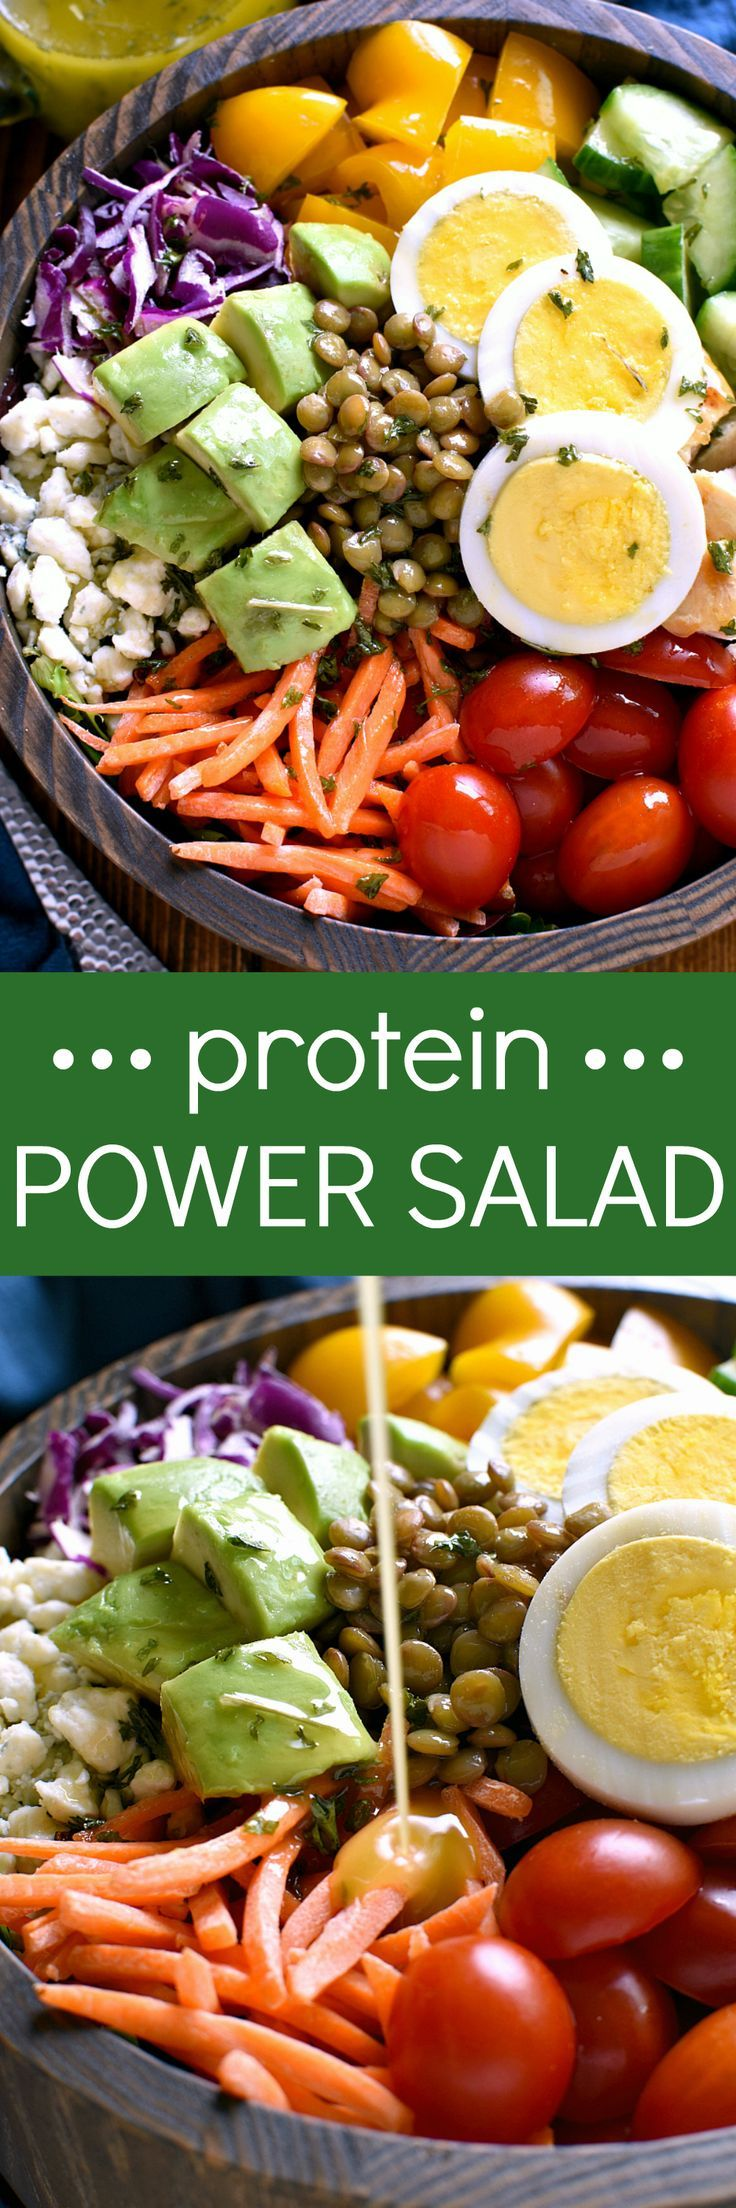 17+ best ideas about Protein Salad on Pinterest | Simple ...